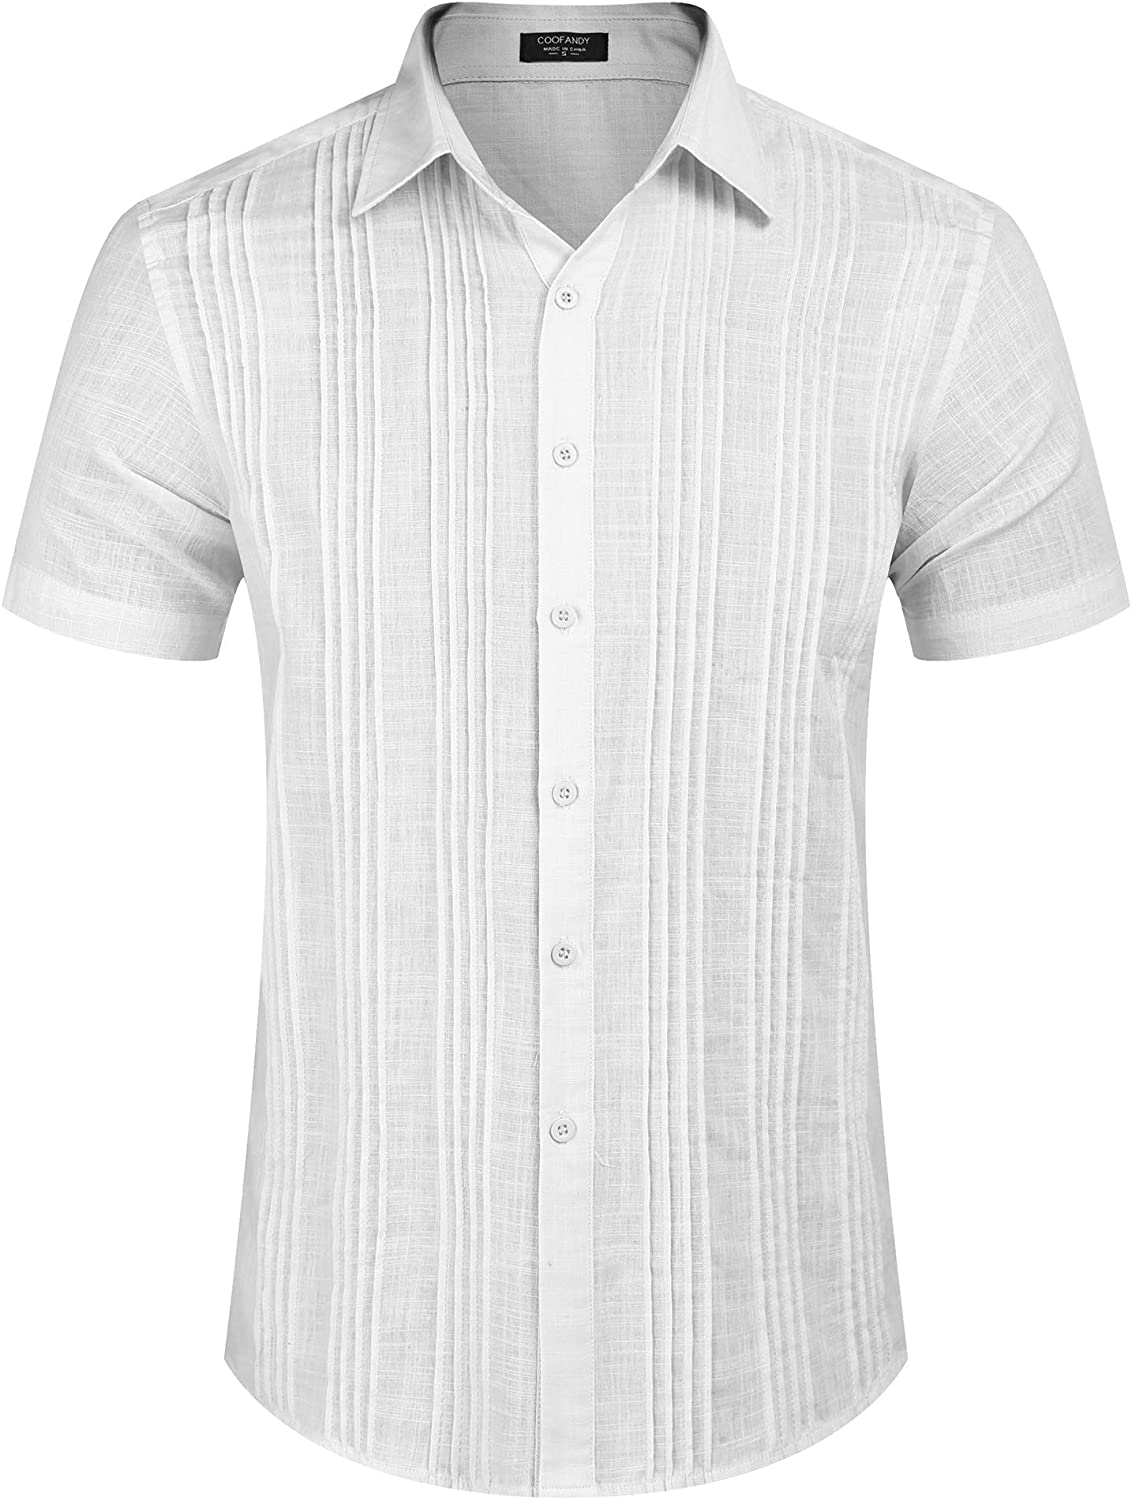 COOFANDY Men's Linen Guayabera Shirt with Pleats Short Sleeve Button Up Cuban Camp Shirts Beach Wedding Shirt